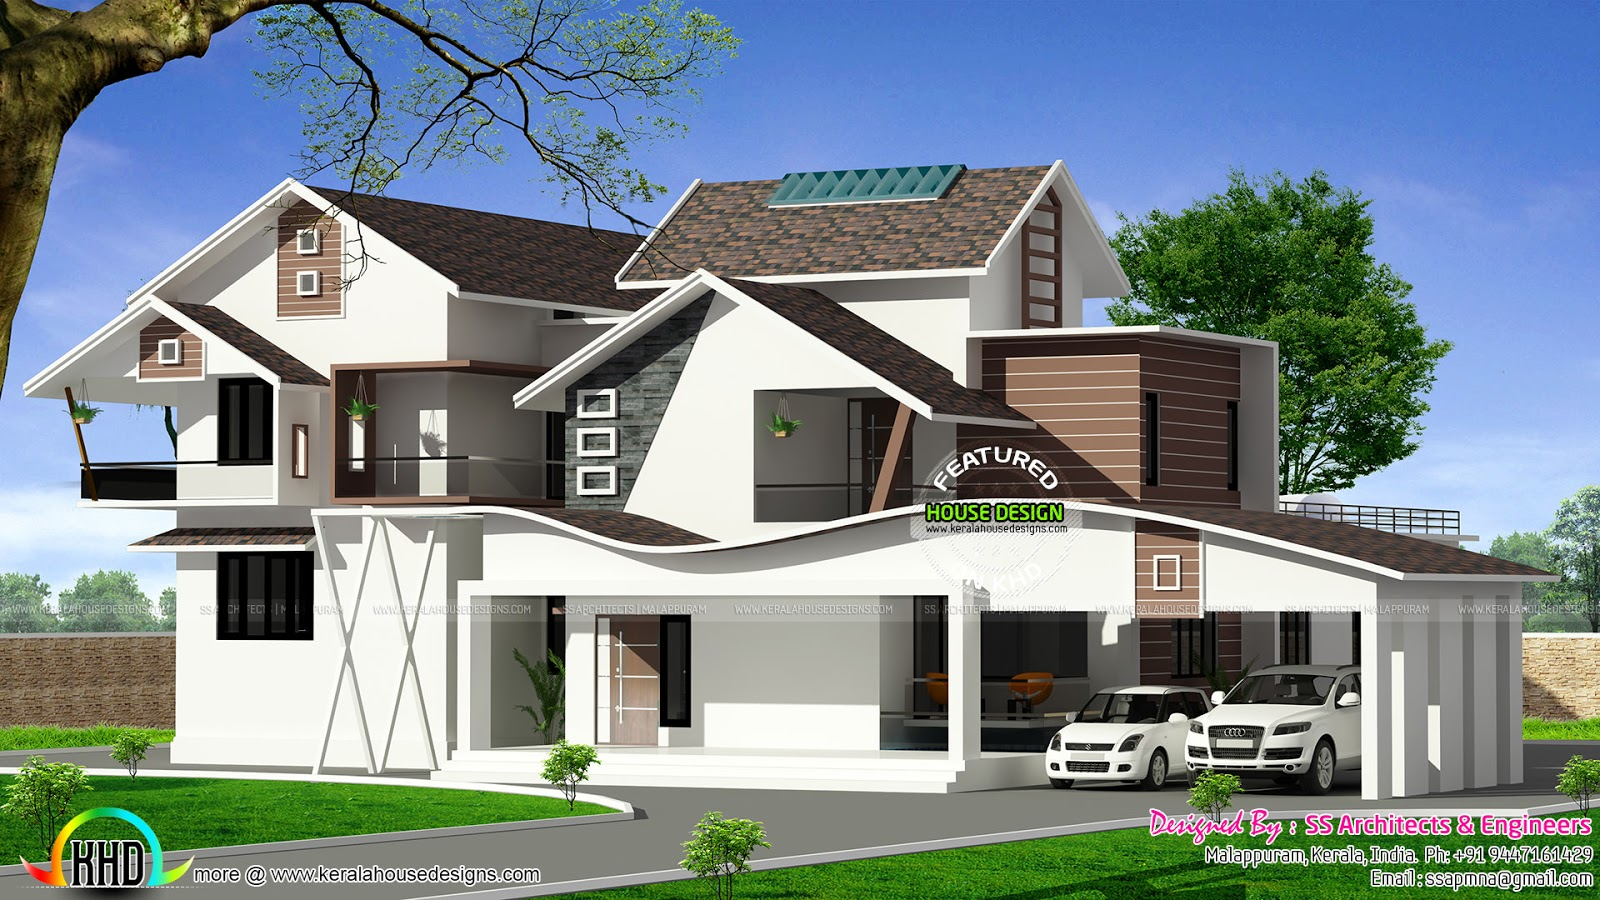 House design hilly area - Wavy Roof House Plan